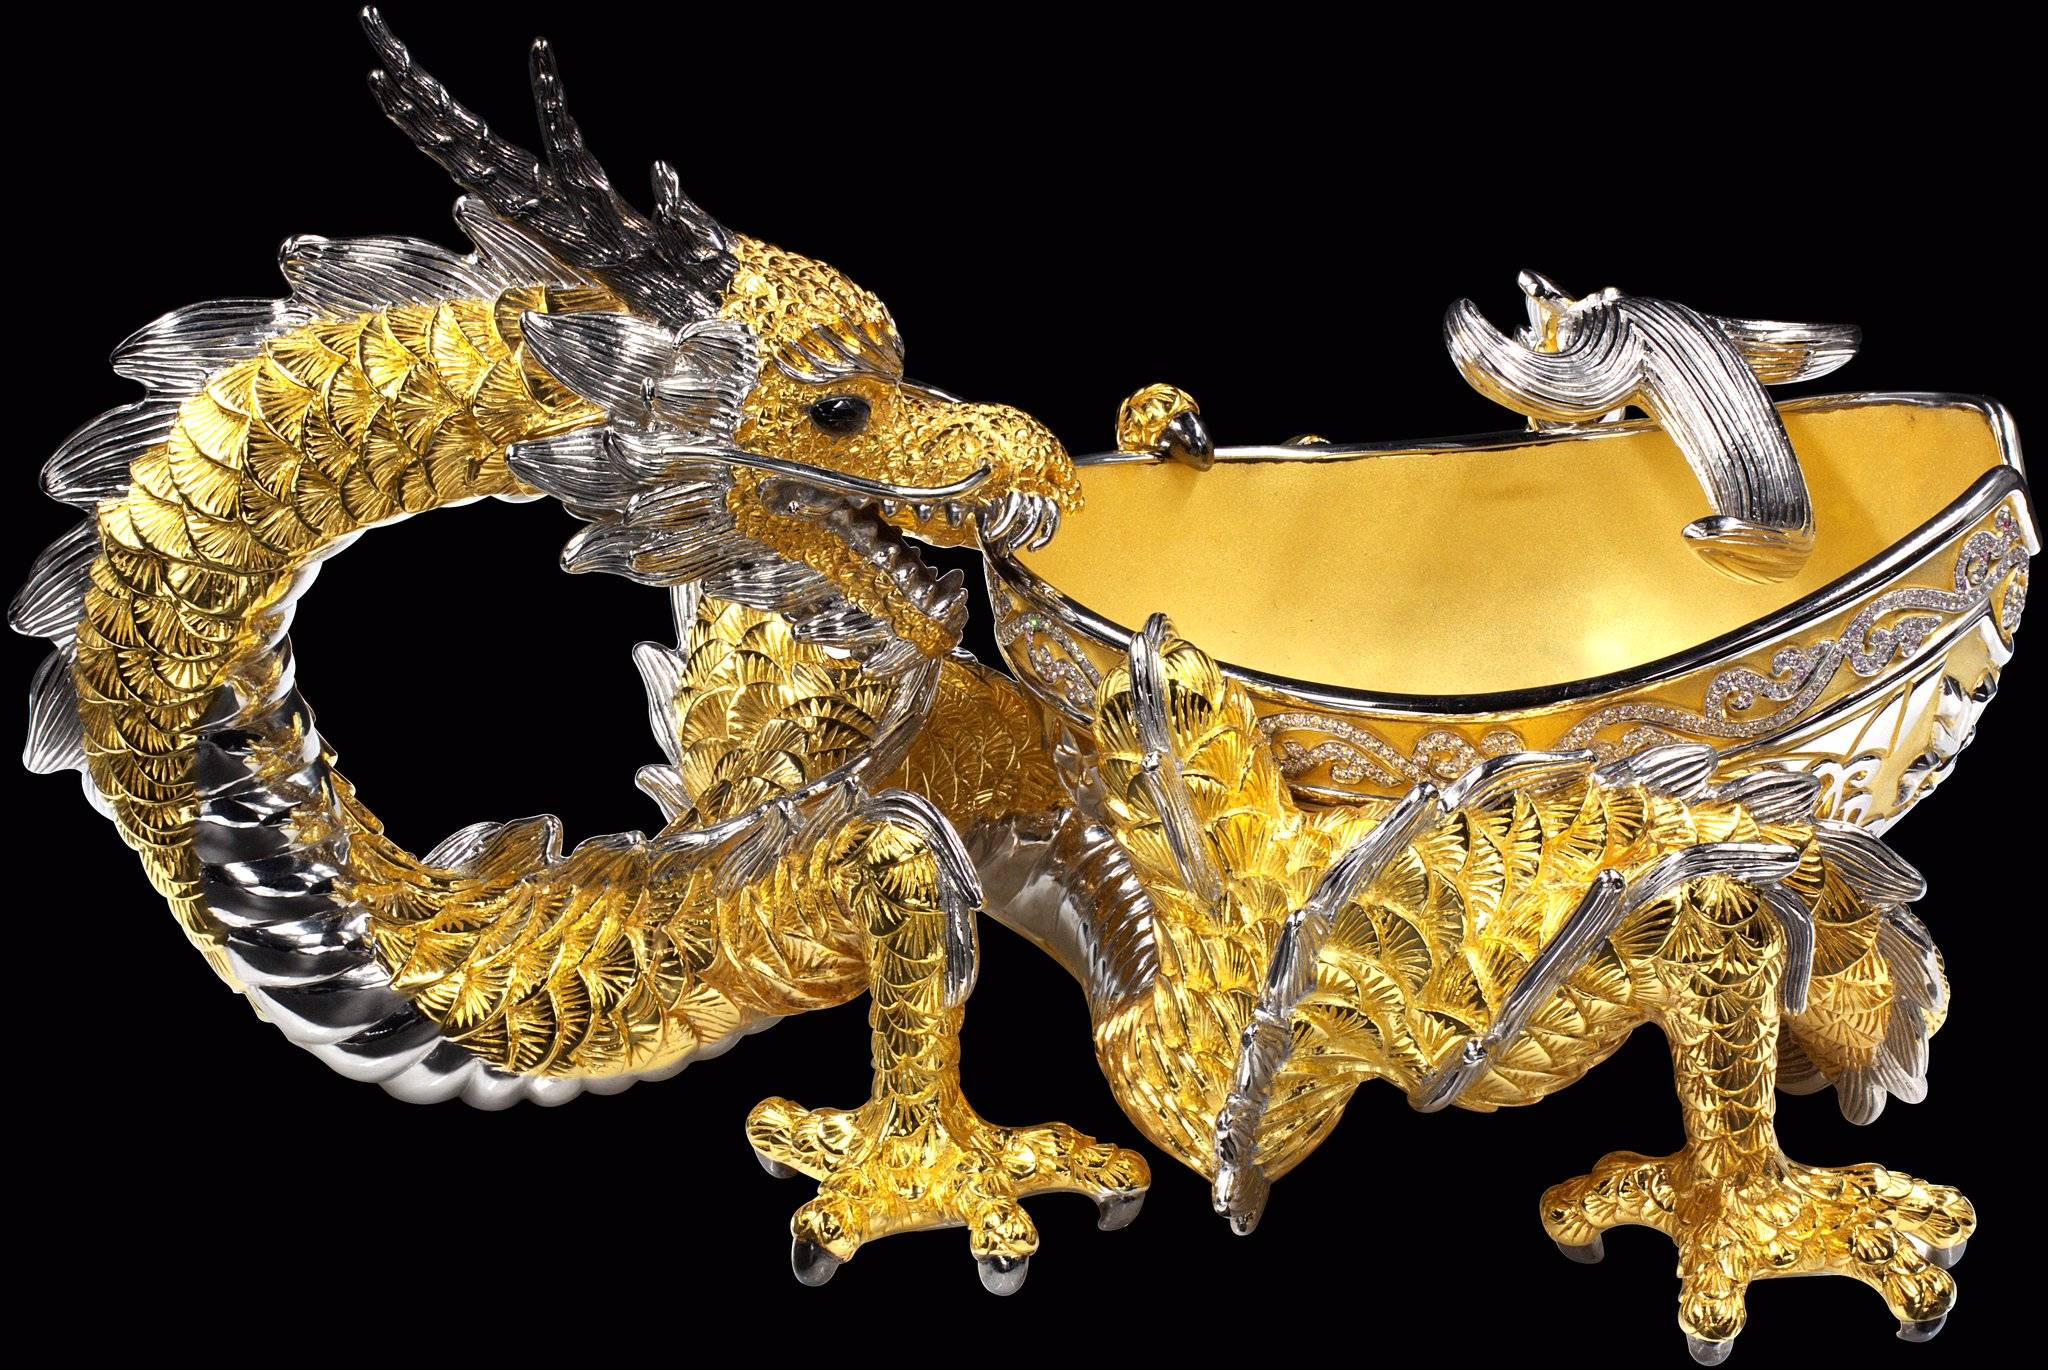 Dragon cigar ashtray yves lemay jewelry